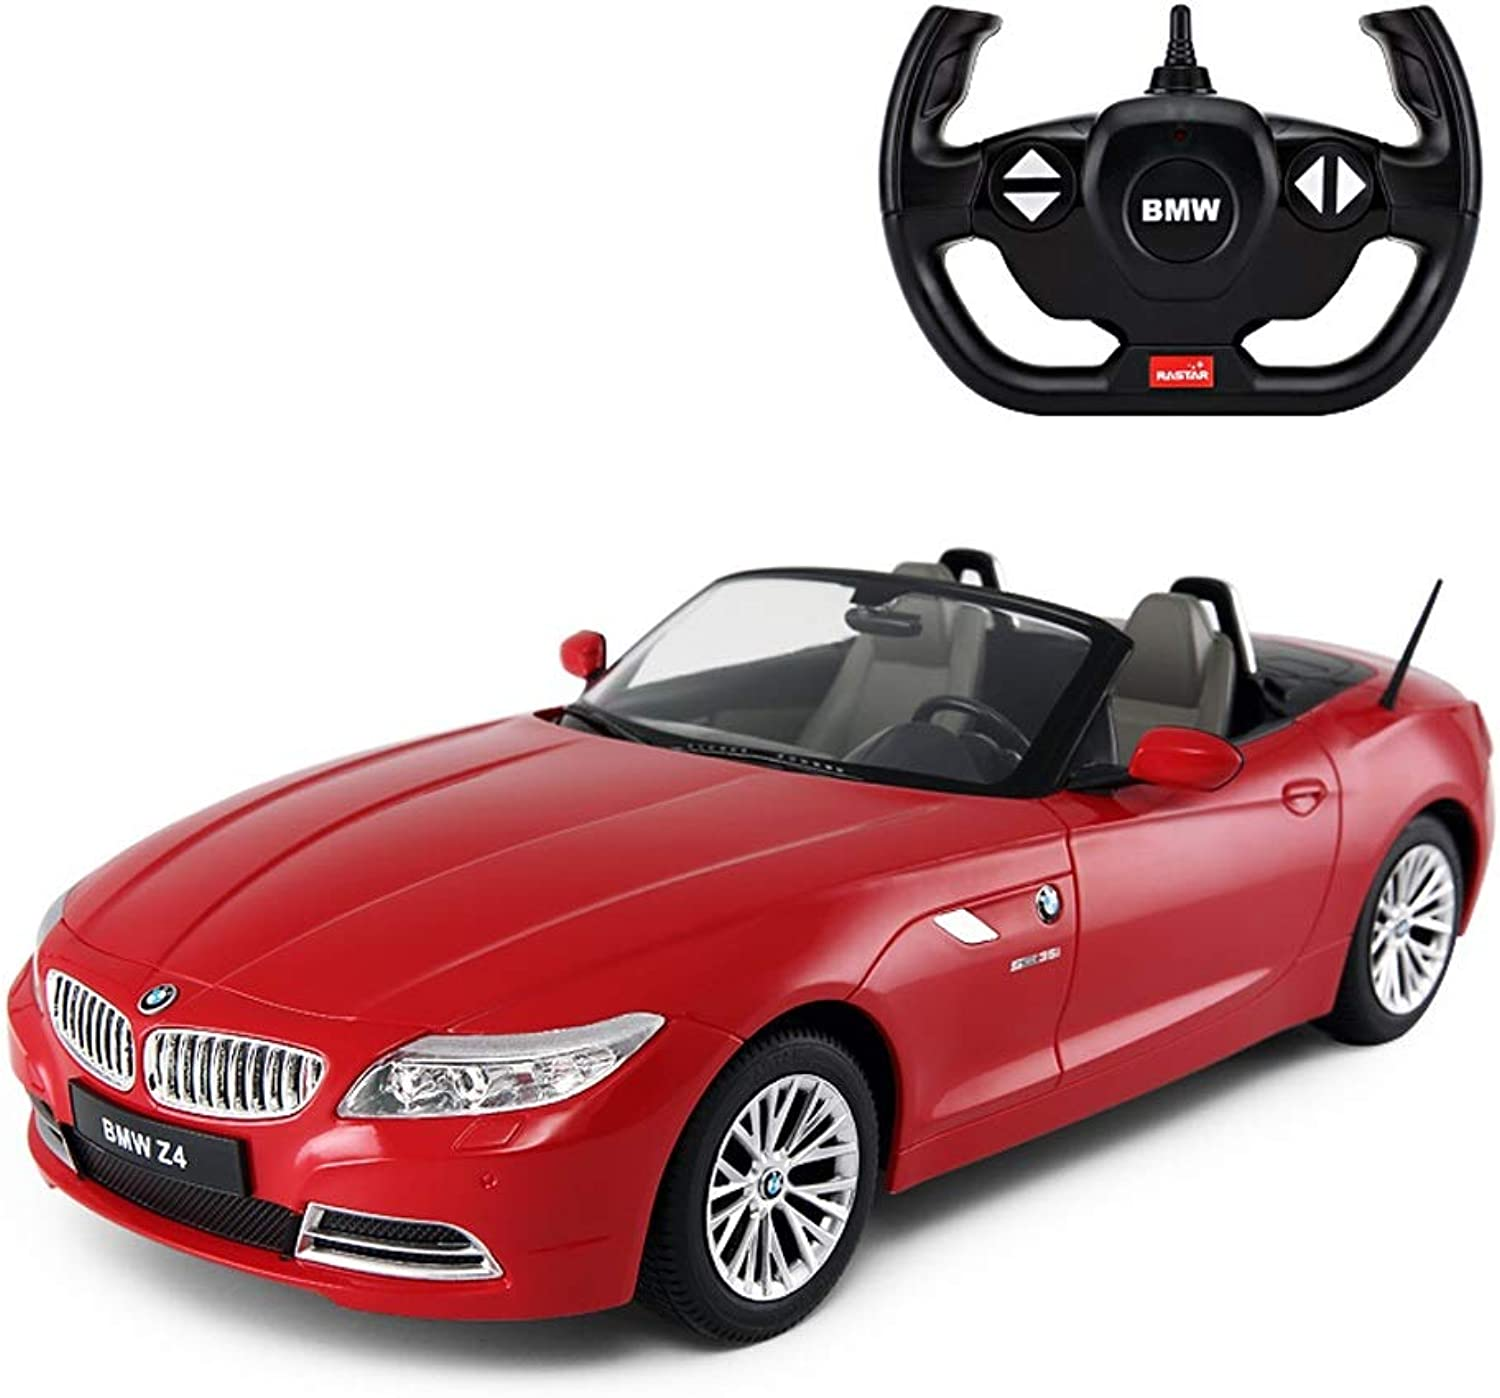 Kikioo 2.4Ghz RC Z4 Official Licensed Wireless Remote Racing Fourwheel Drive Grand Sport Car For Kids With Working Lights Radio Controlled Vitesse Stunt Vehicle 1 12 Model Great Toys Boys Girls Black